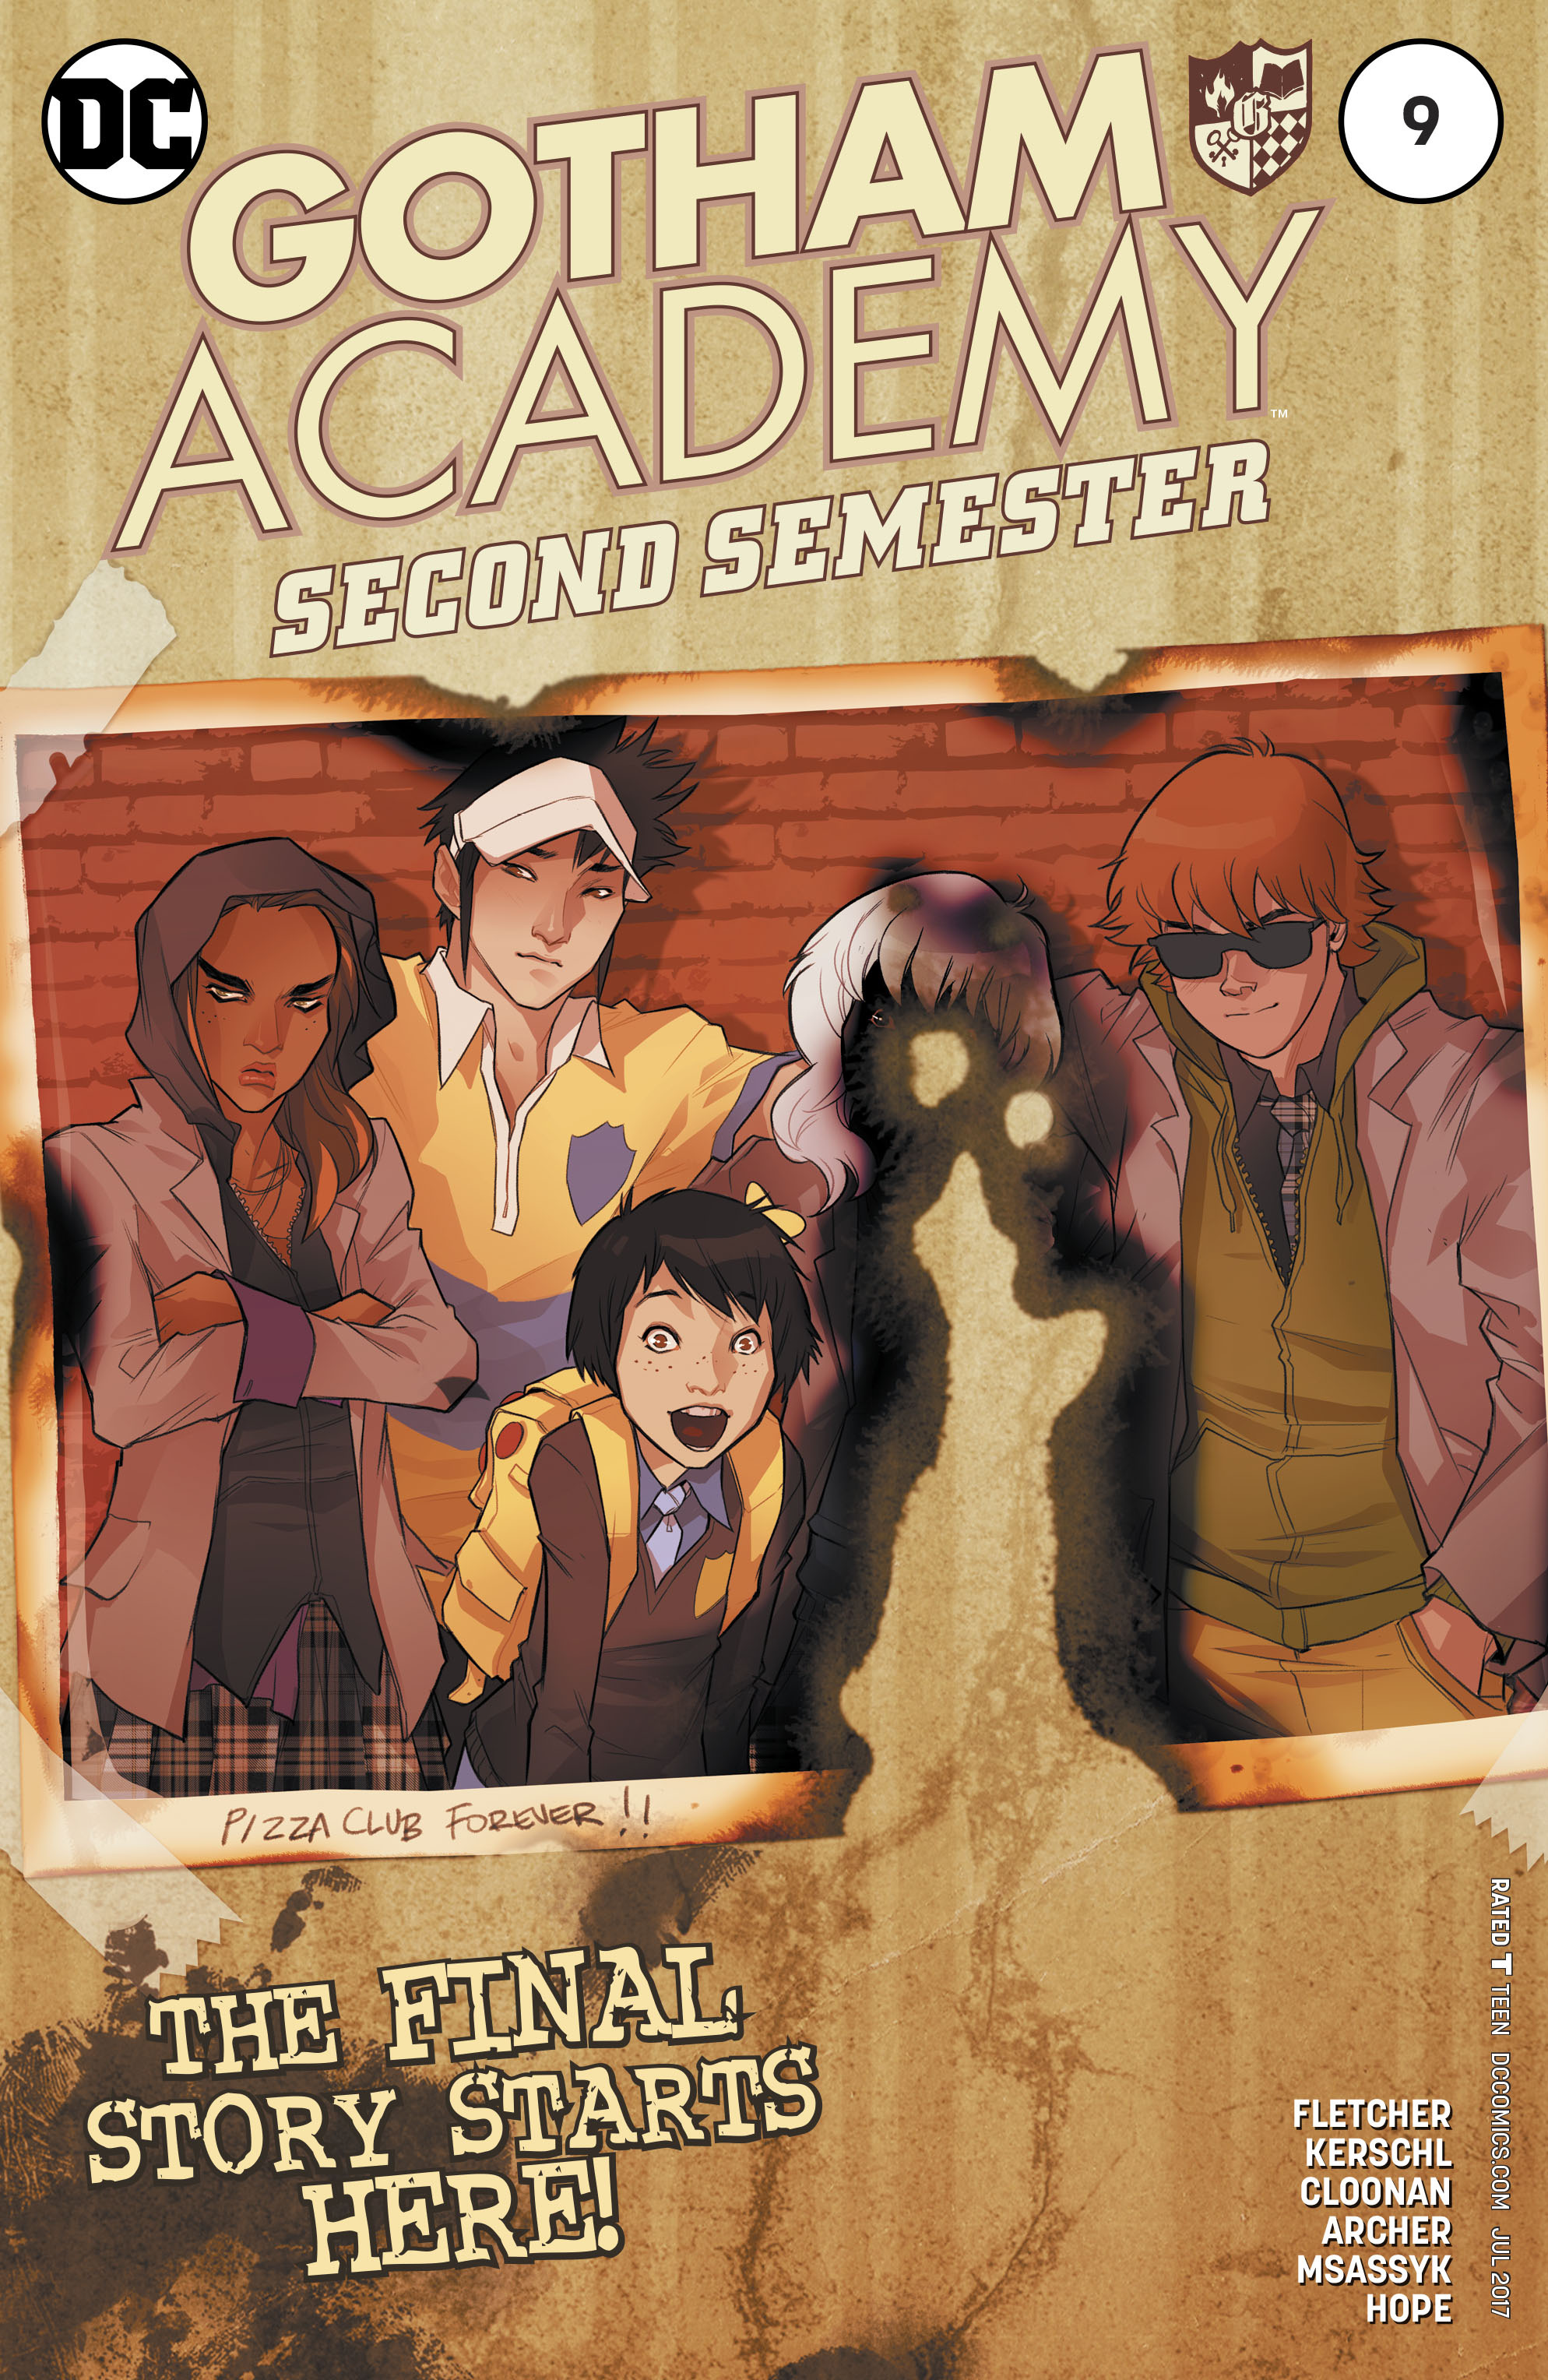 Read online Gotham Academy: Second Semester comic -  Issue #9 - 1